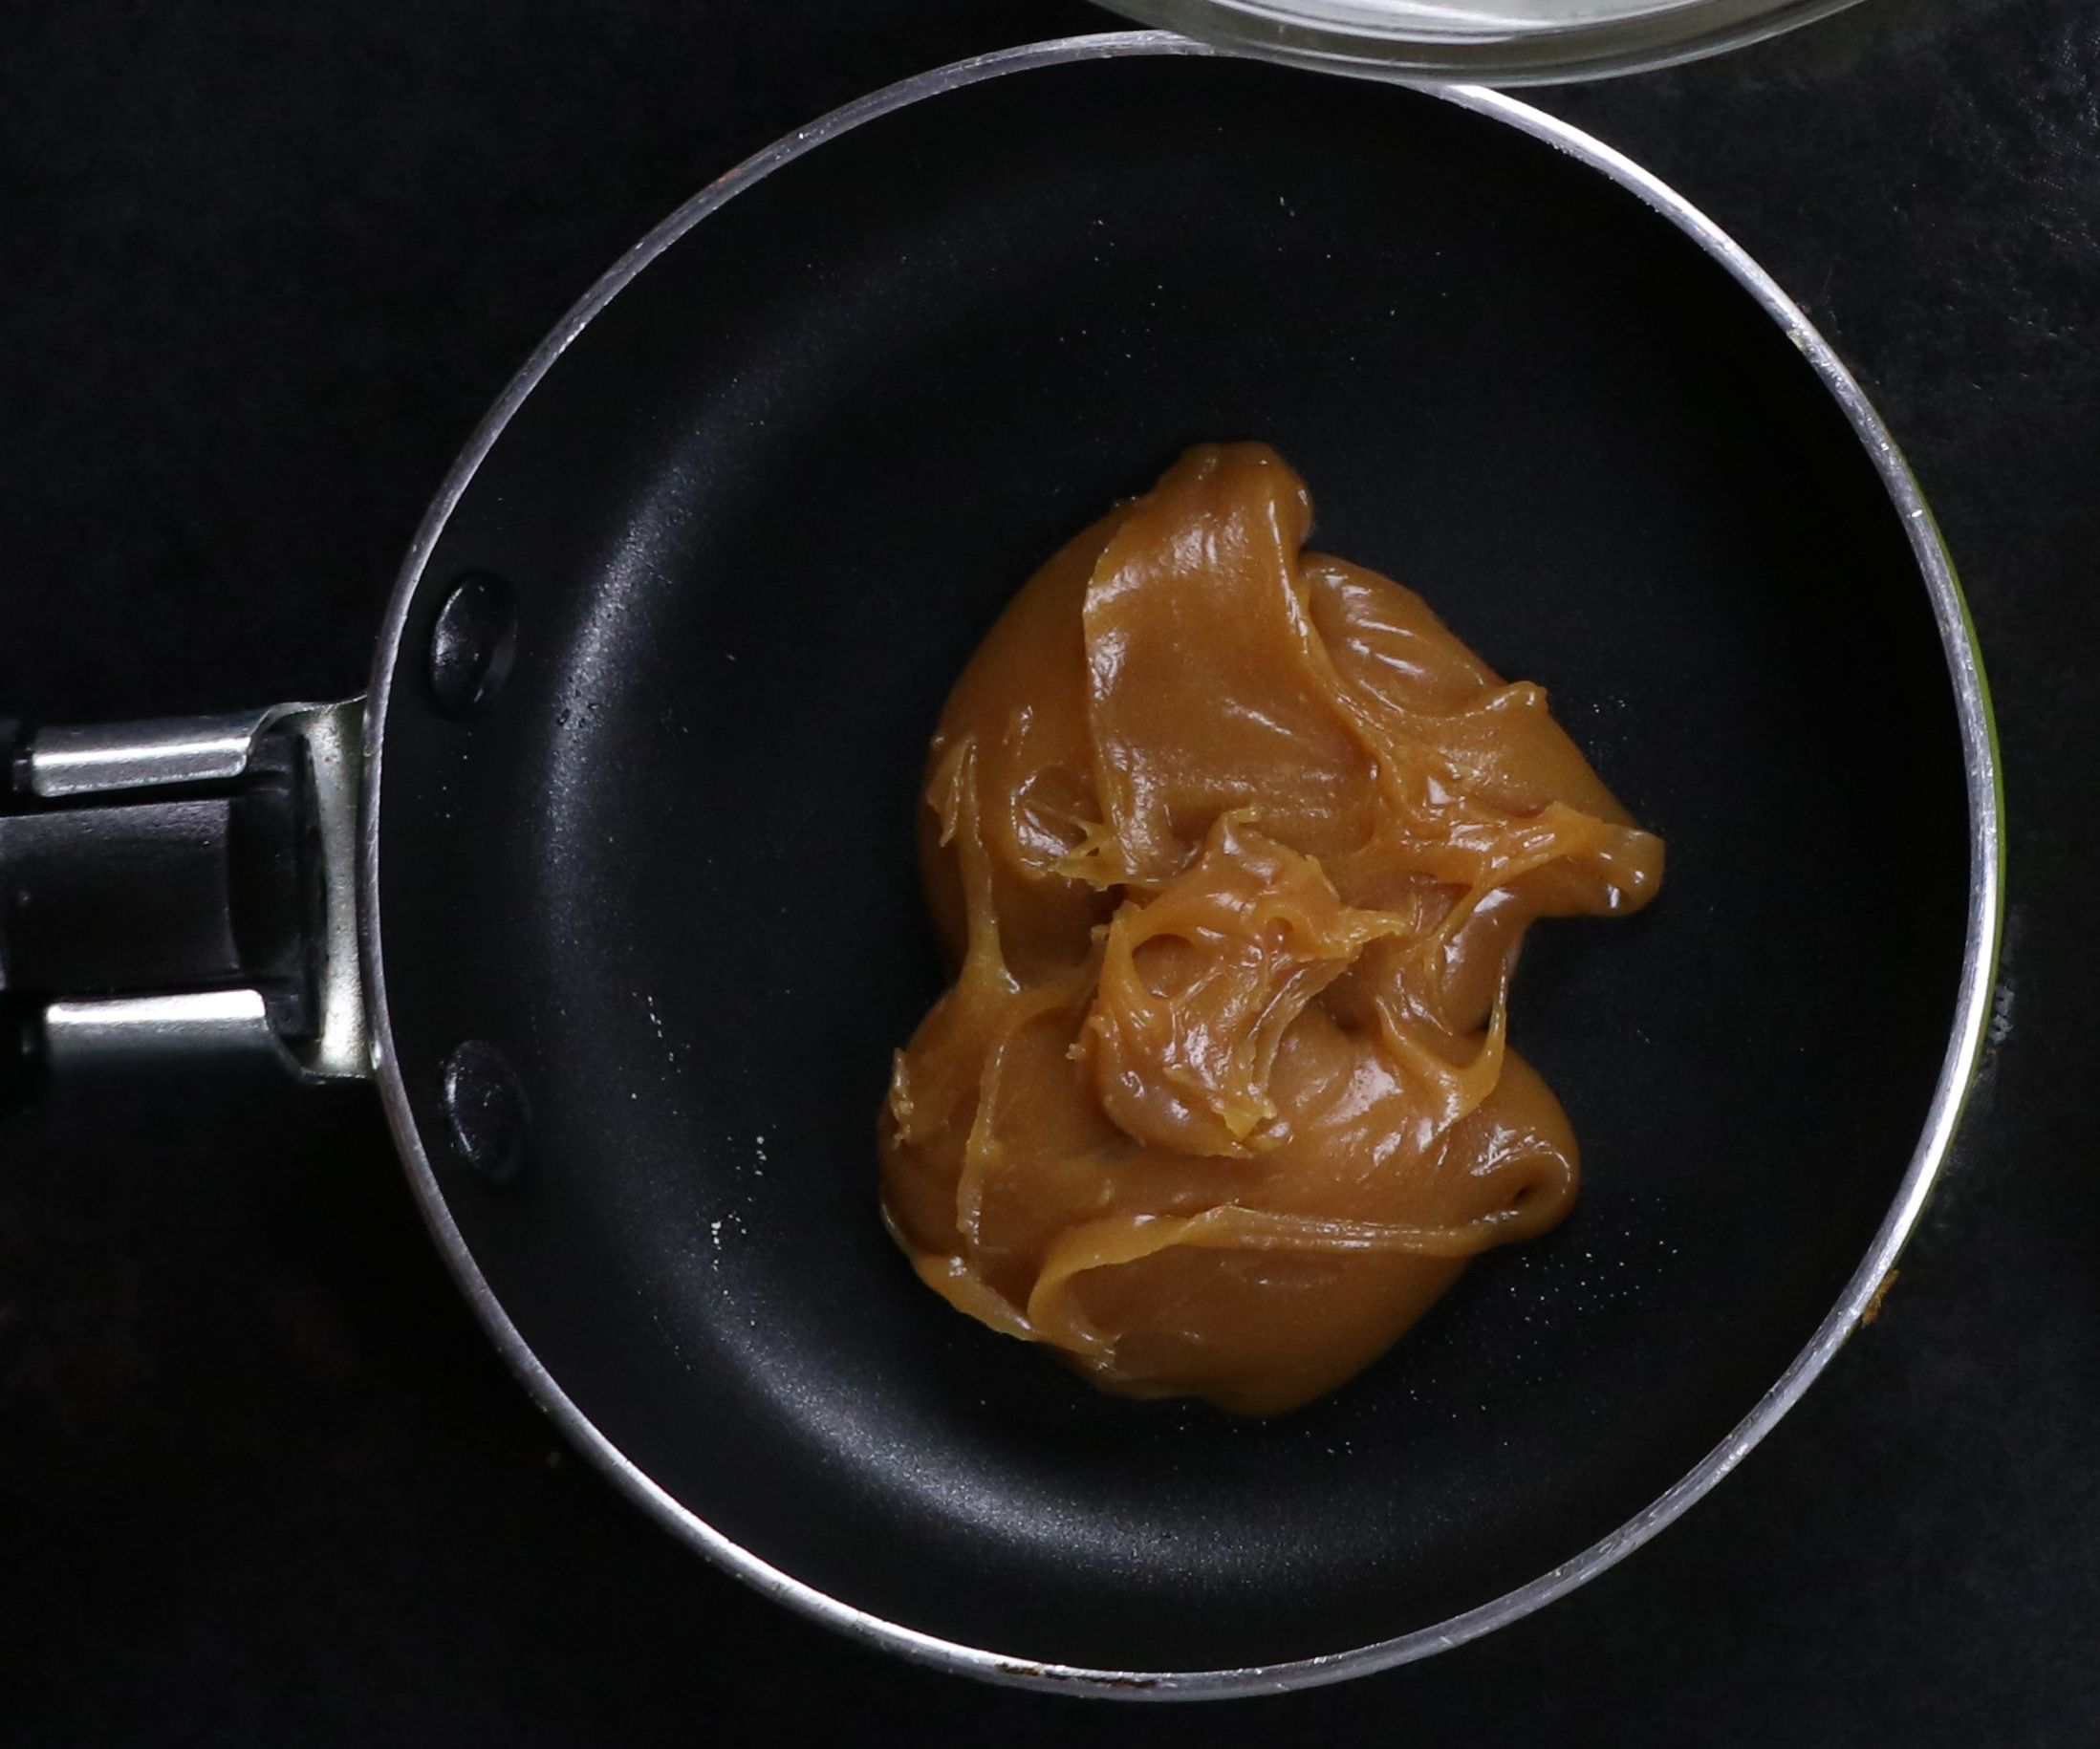 How to Make a Delicious Caramel (on Your First Attempt!)